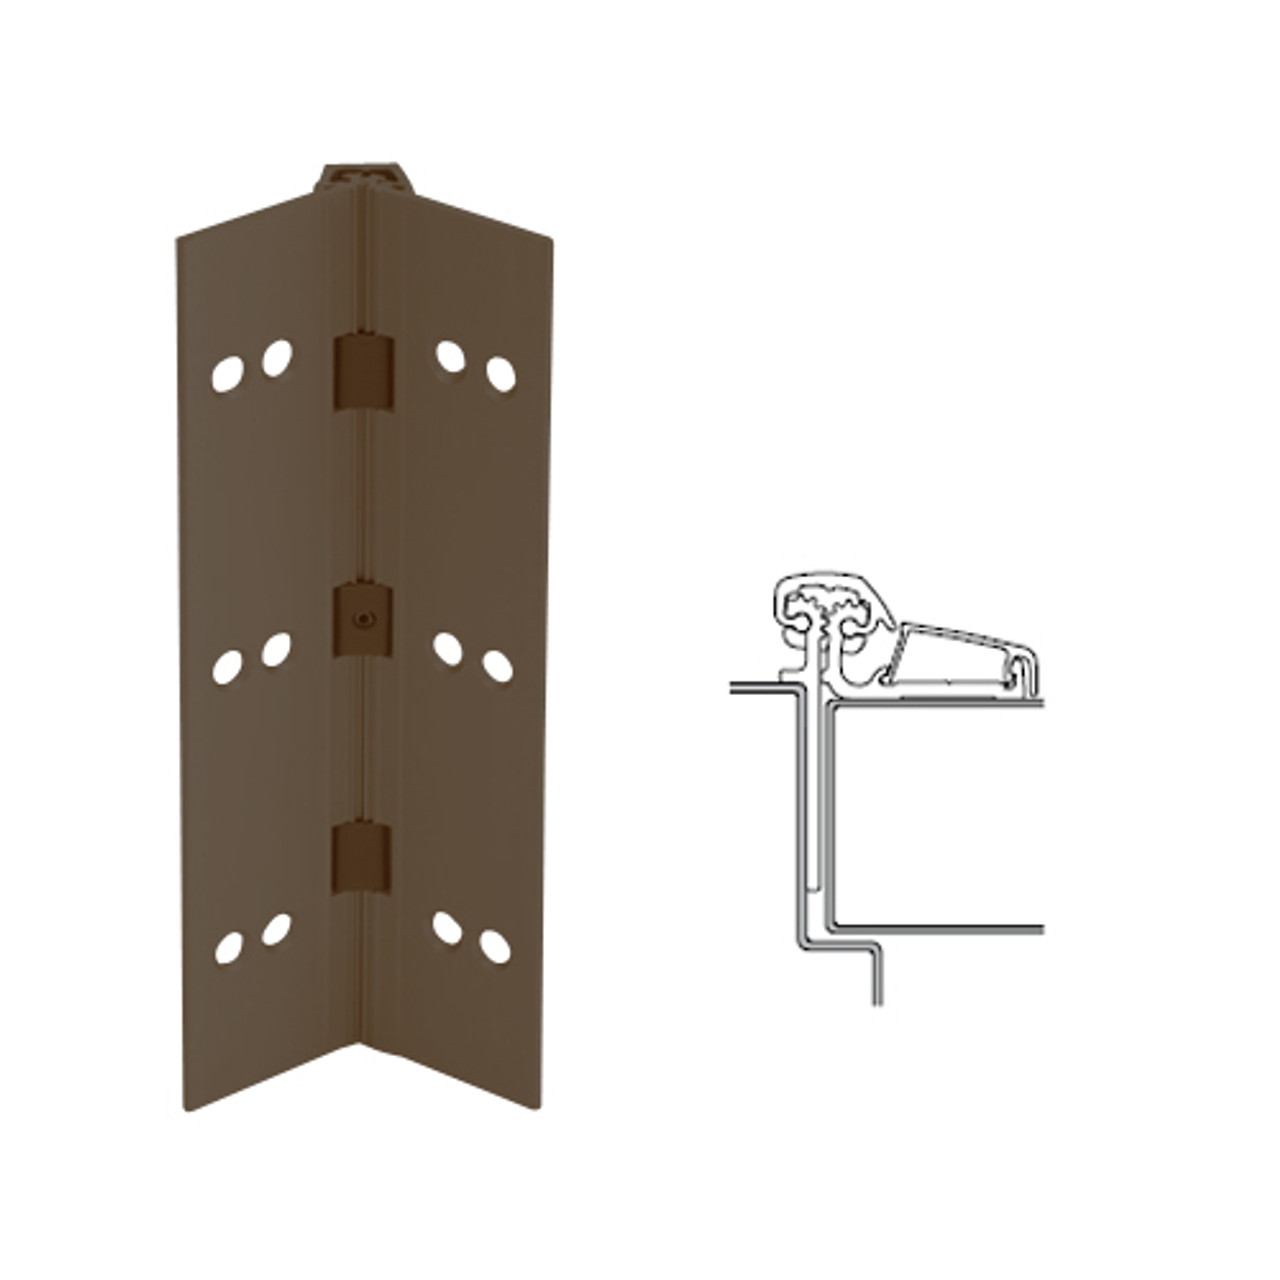 053XY-313AN-85-TFWD IVES Adjustable Half Surface Continuous Geared Hinges with Thread Forming Screws in Dark Bronze Anodized